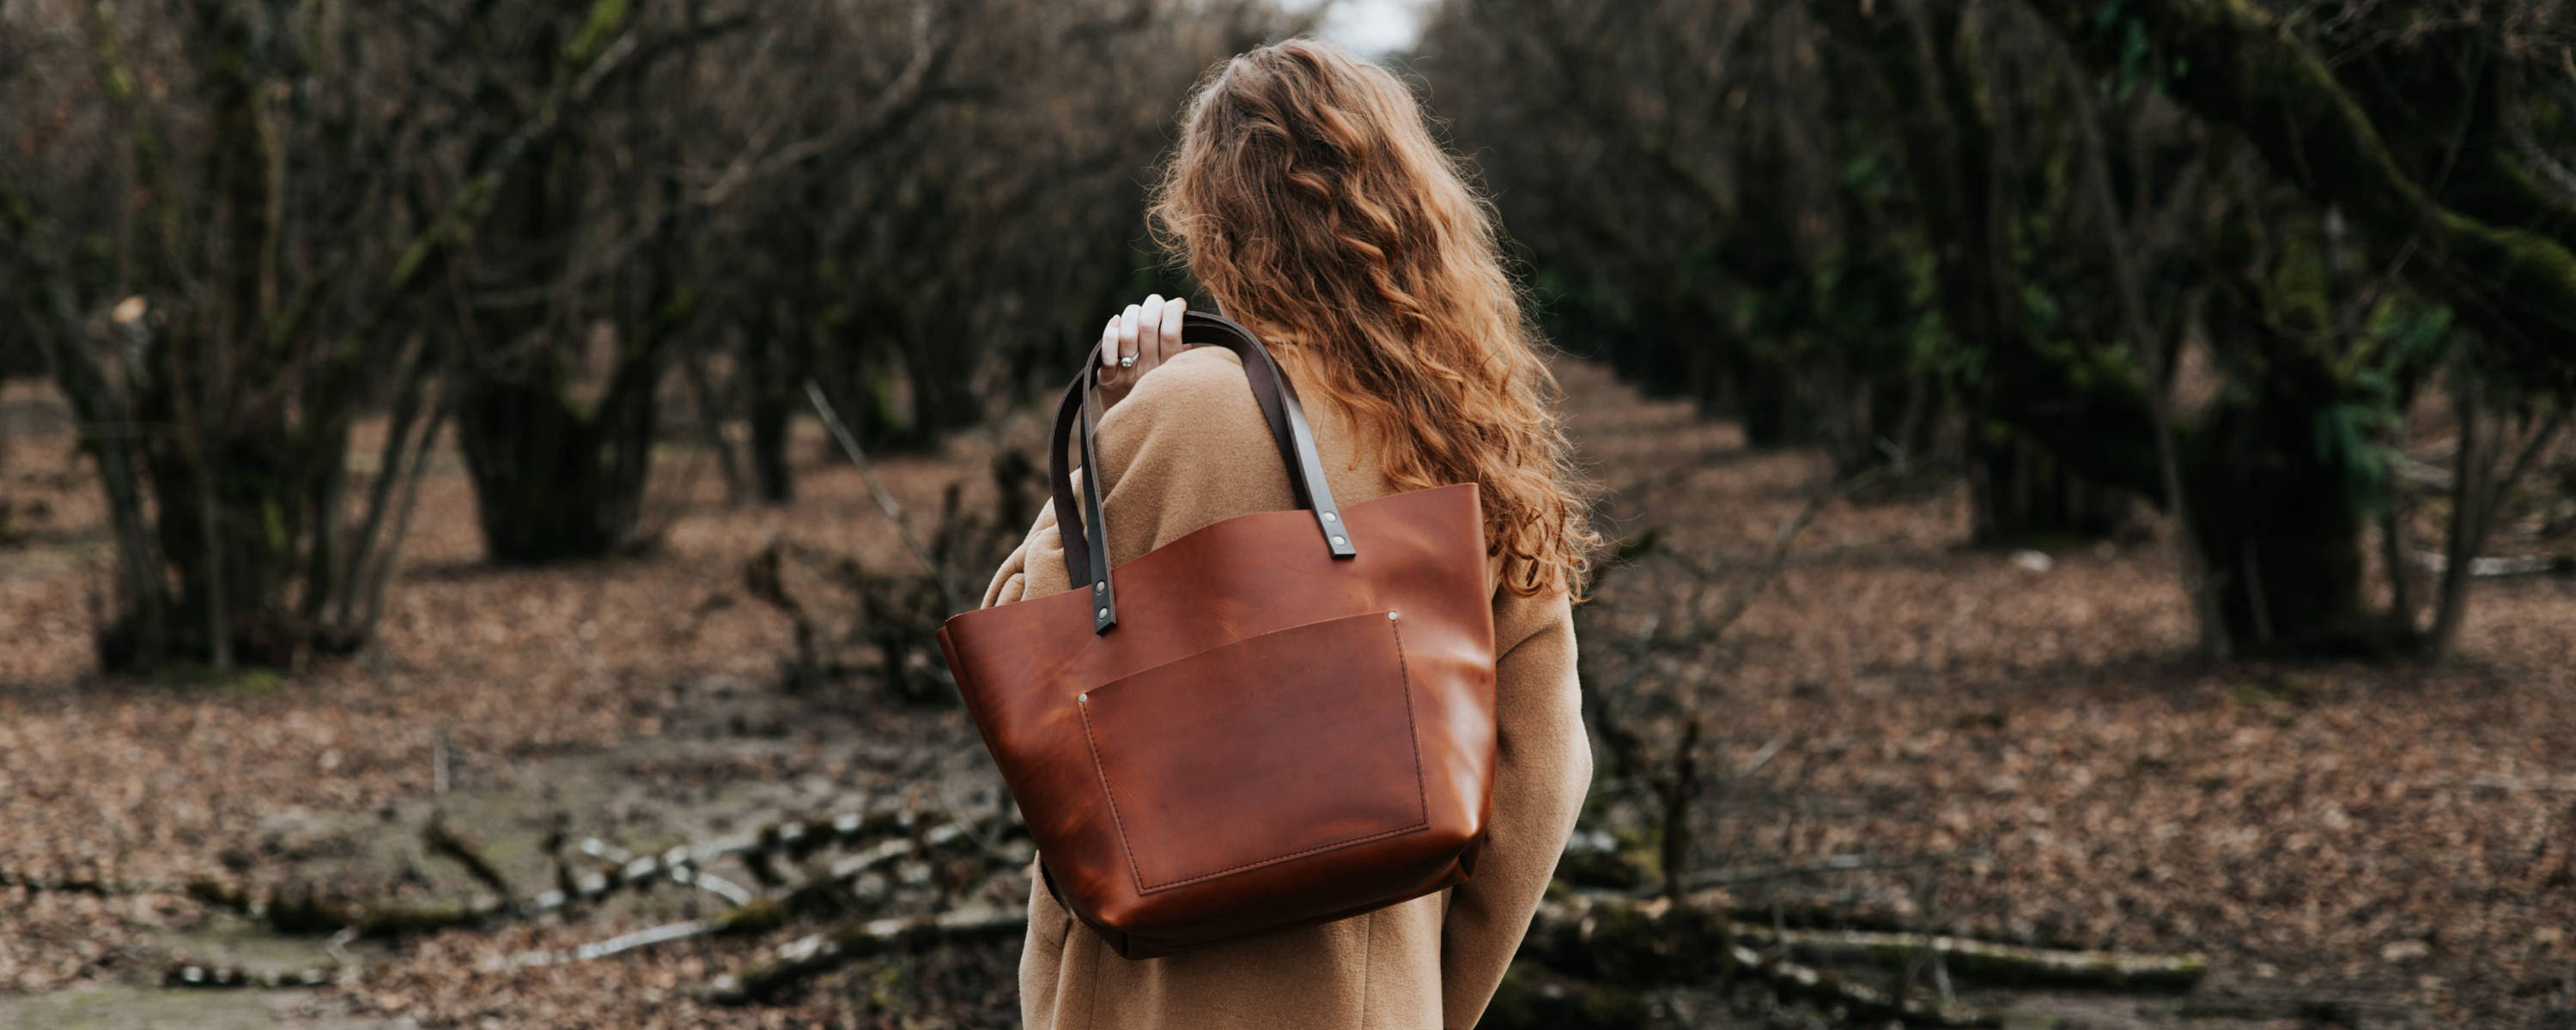 leather tote slung over the shoulder of a model walking in the woods